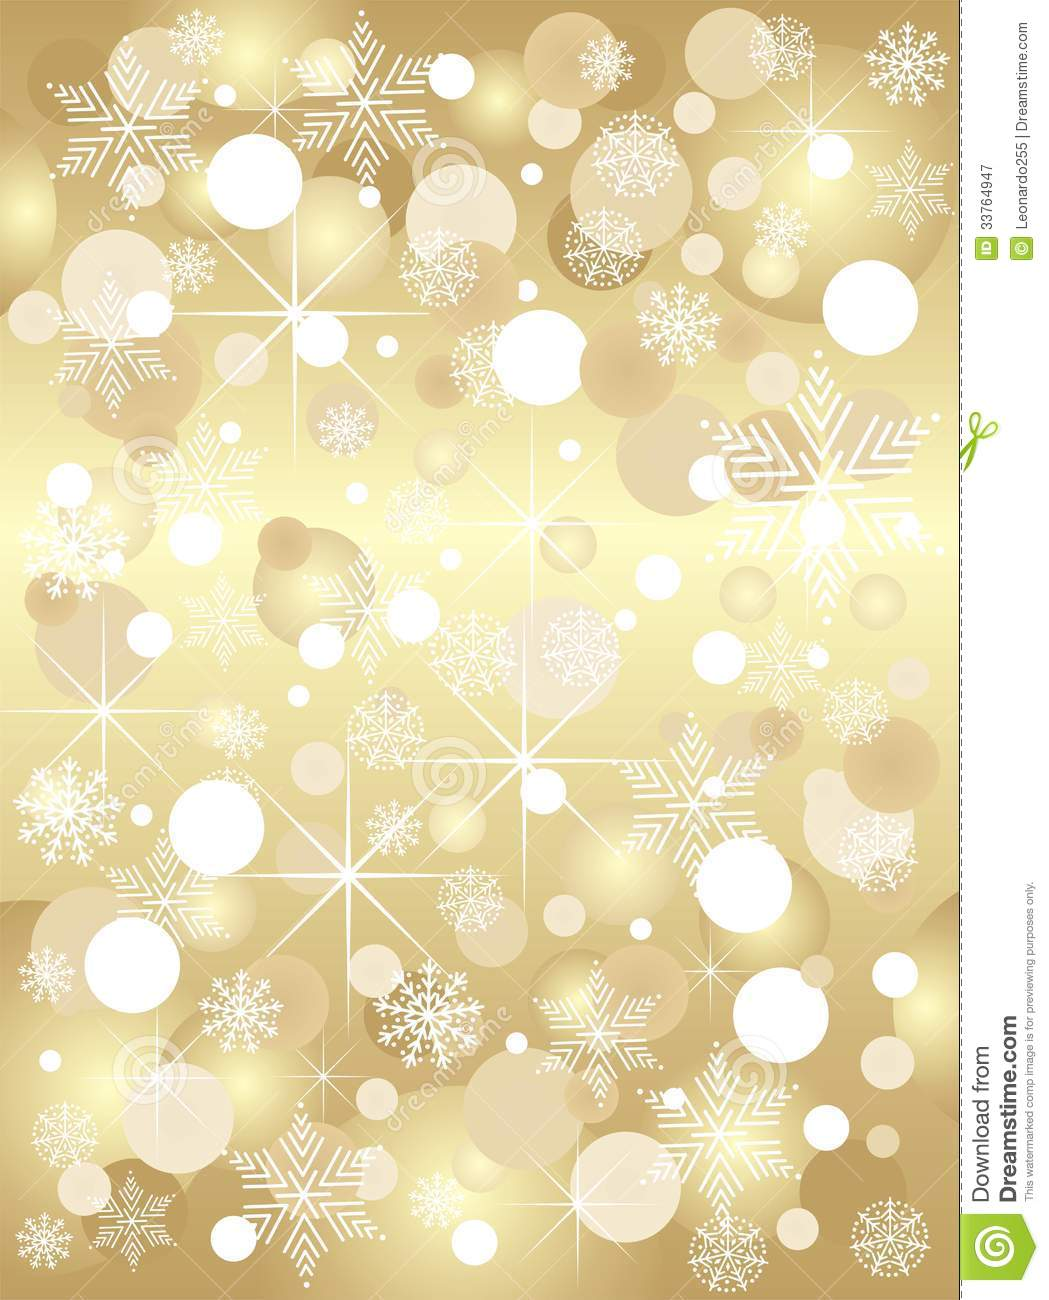 gold christmas snowflake wallpaper - photo #43